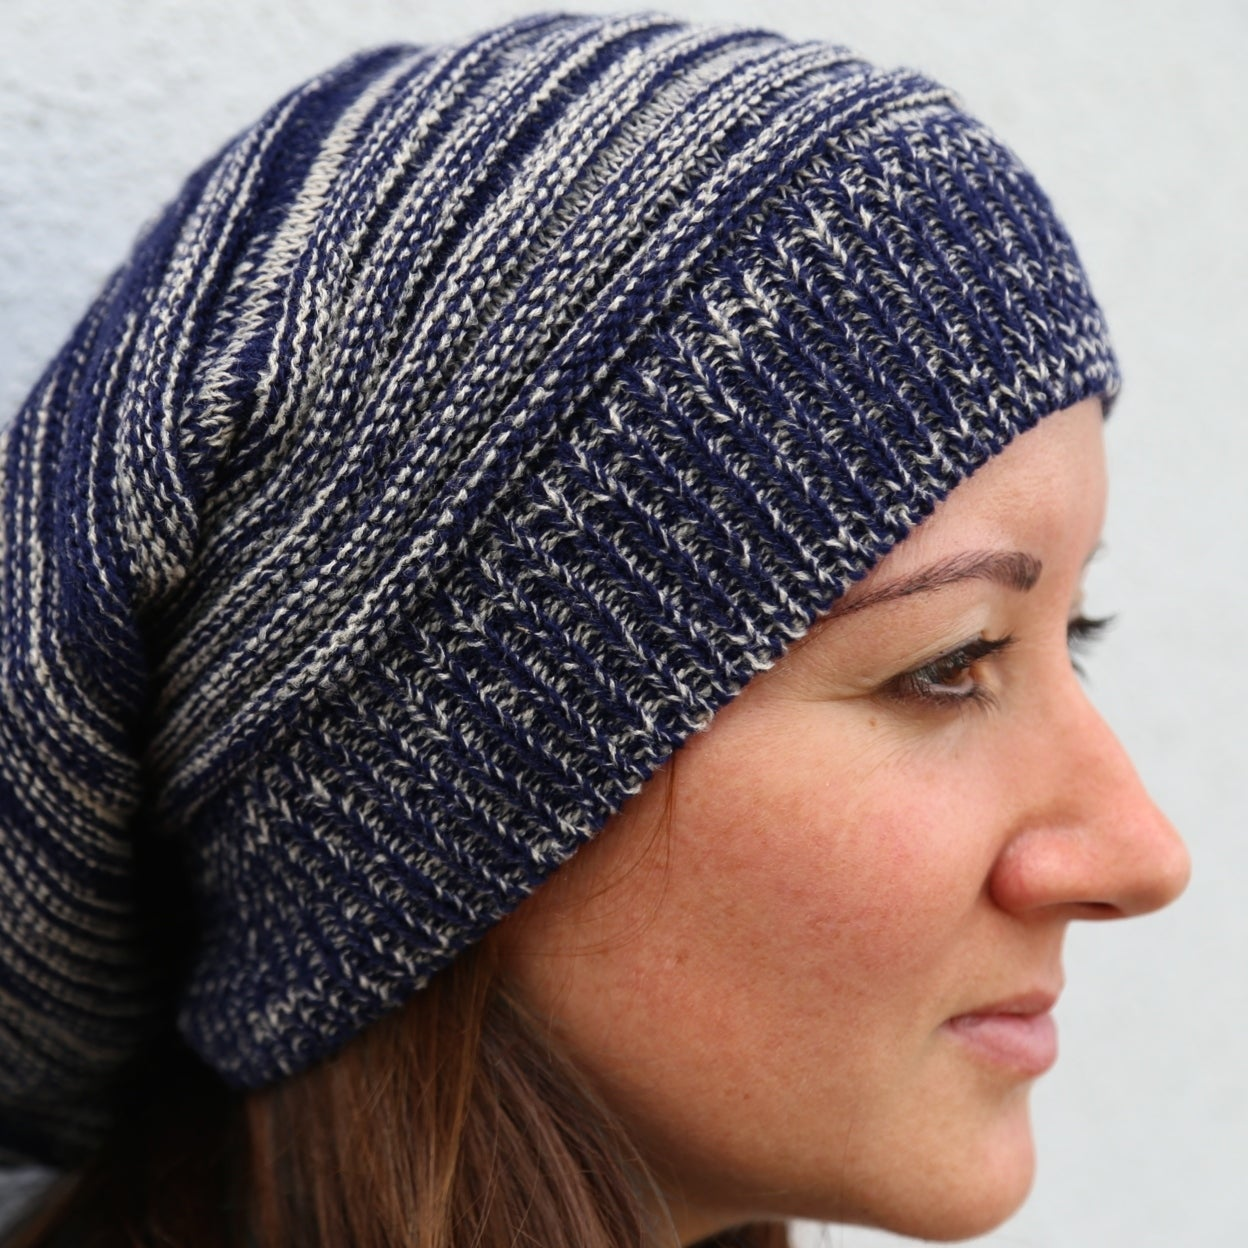 035b2ff1da527 Shop Slouch Knit Beanie - Free Shipping On Orders Over  45 - Overstock.com  - 22823843